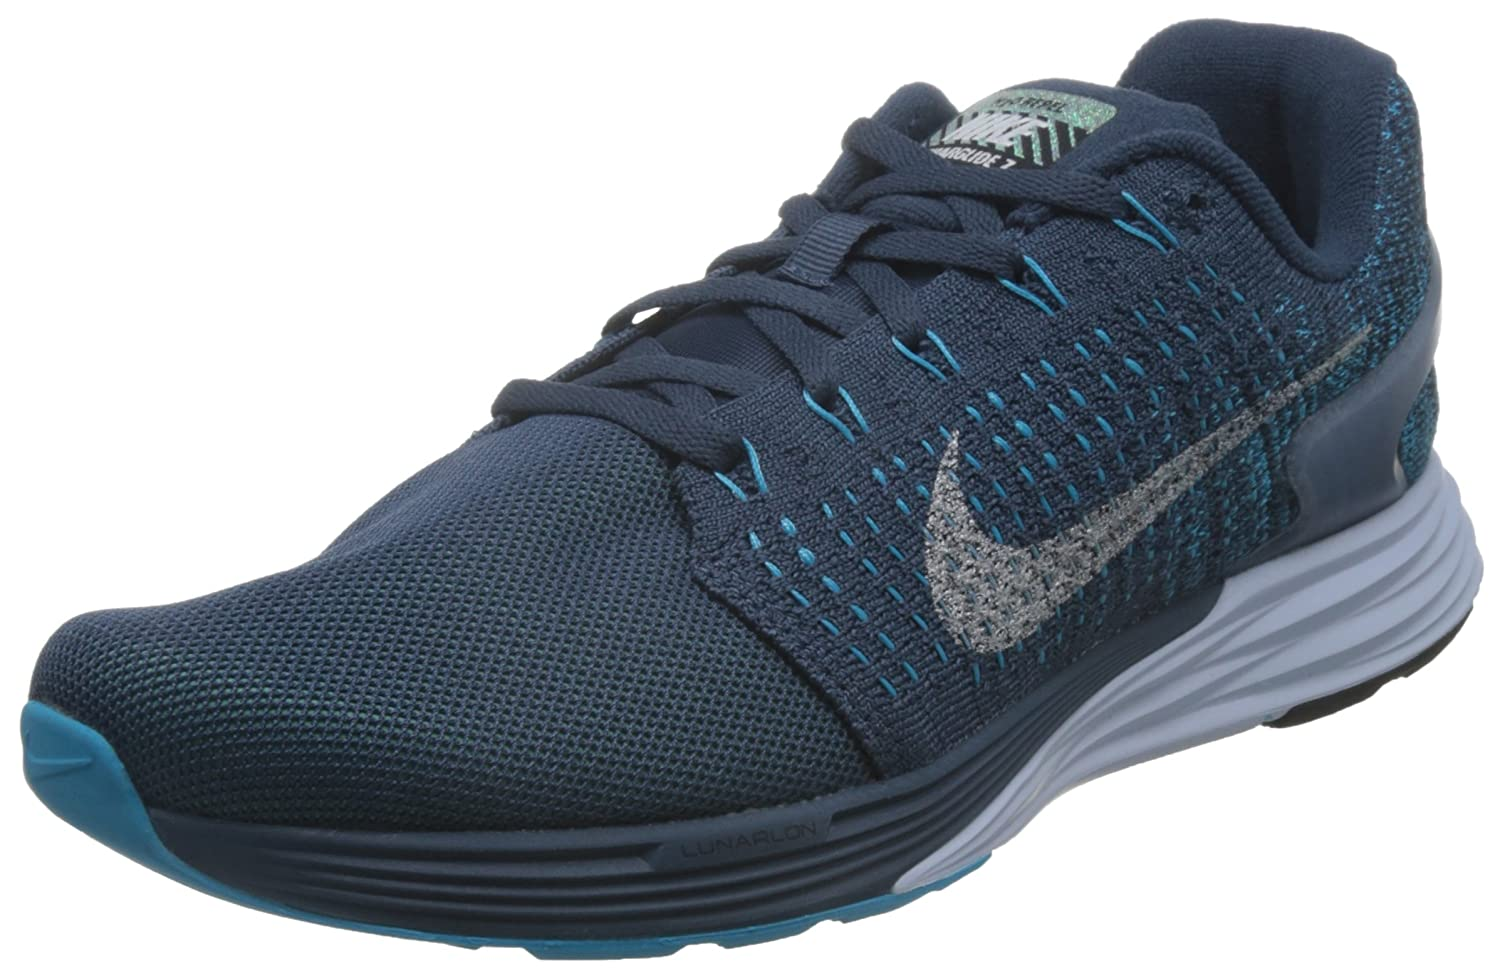 a071bfd4d316 Nike Lunarglide 7 Flash 803566-400 Mens shoes SQUADRON BLUE REFLECT SILVER- BLUE LAGOON 9 D(M) US  Amazon.in  Shoes   Handbags